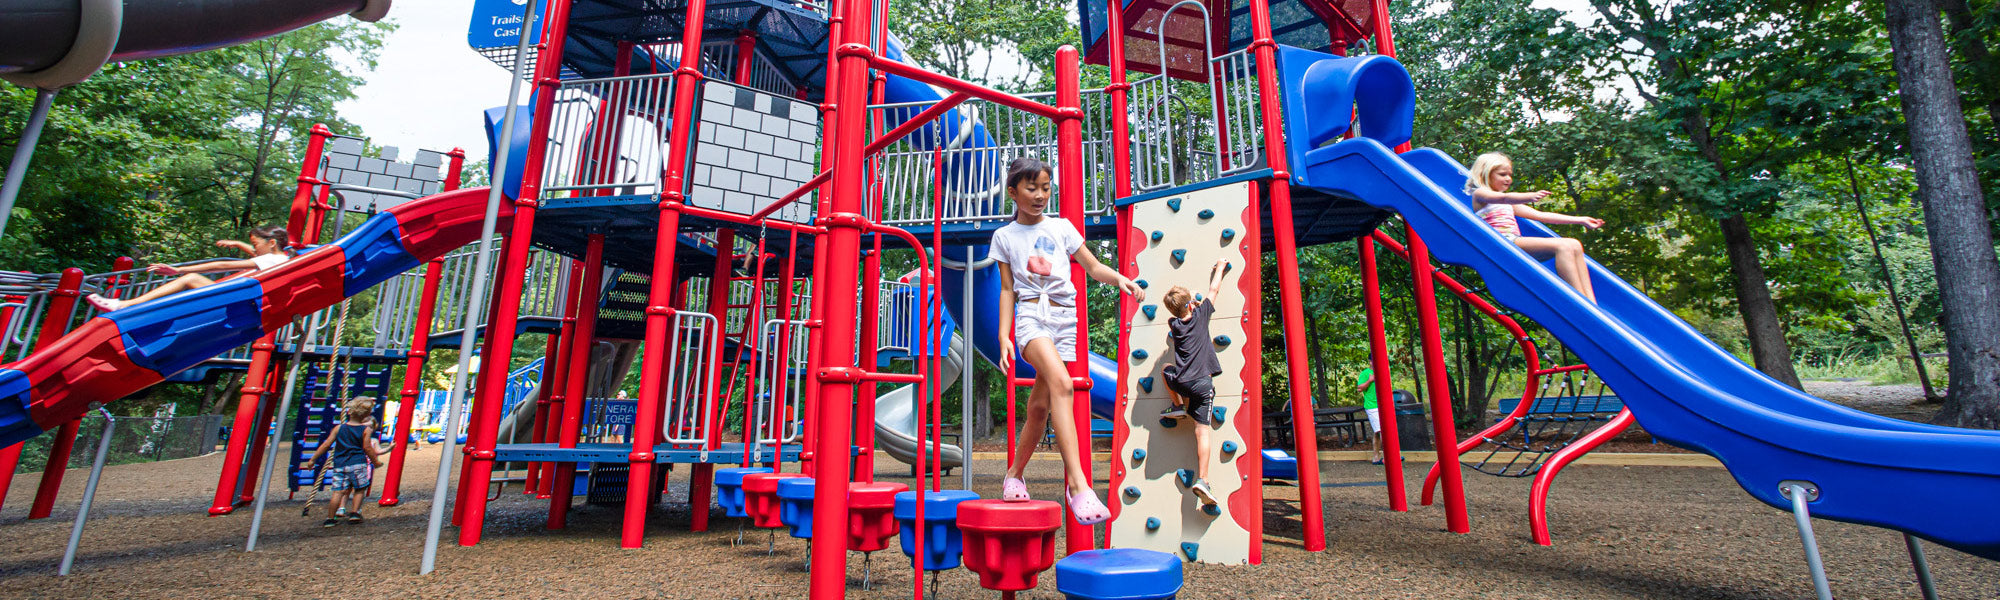 Commercial Playgrounds from WillyGoat.com